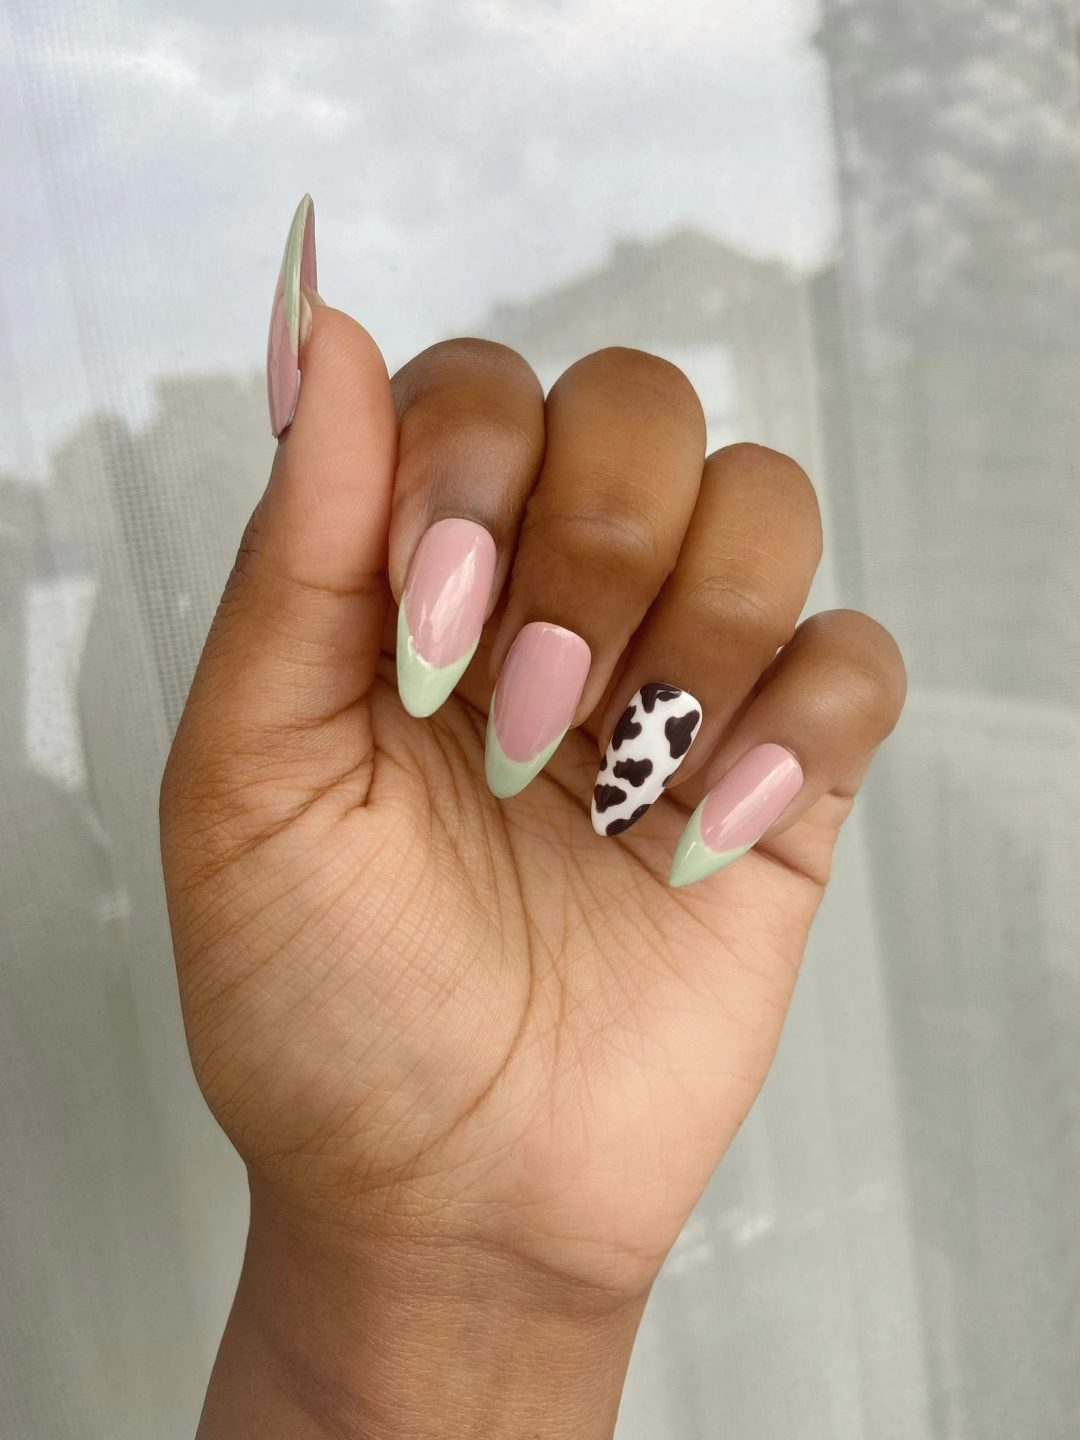 Sage green french tips with cow pattern